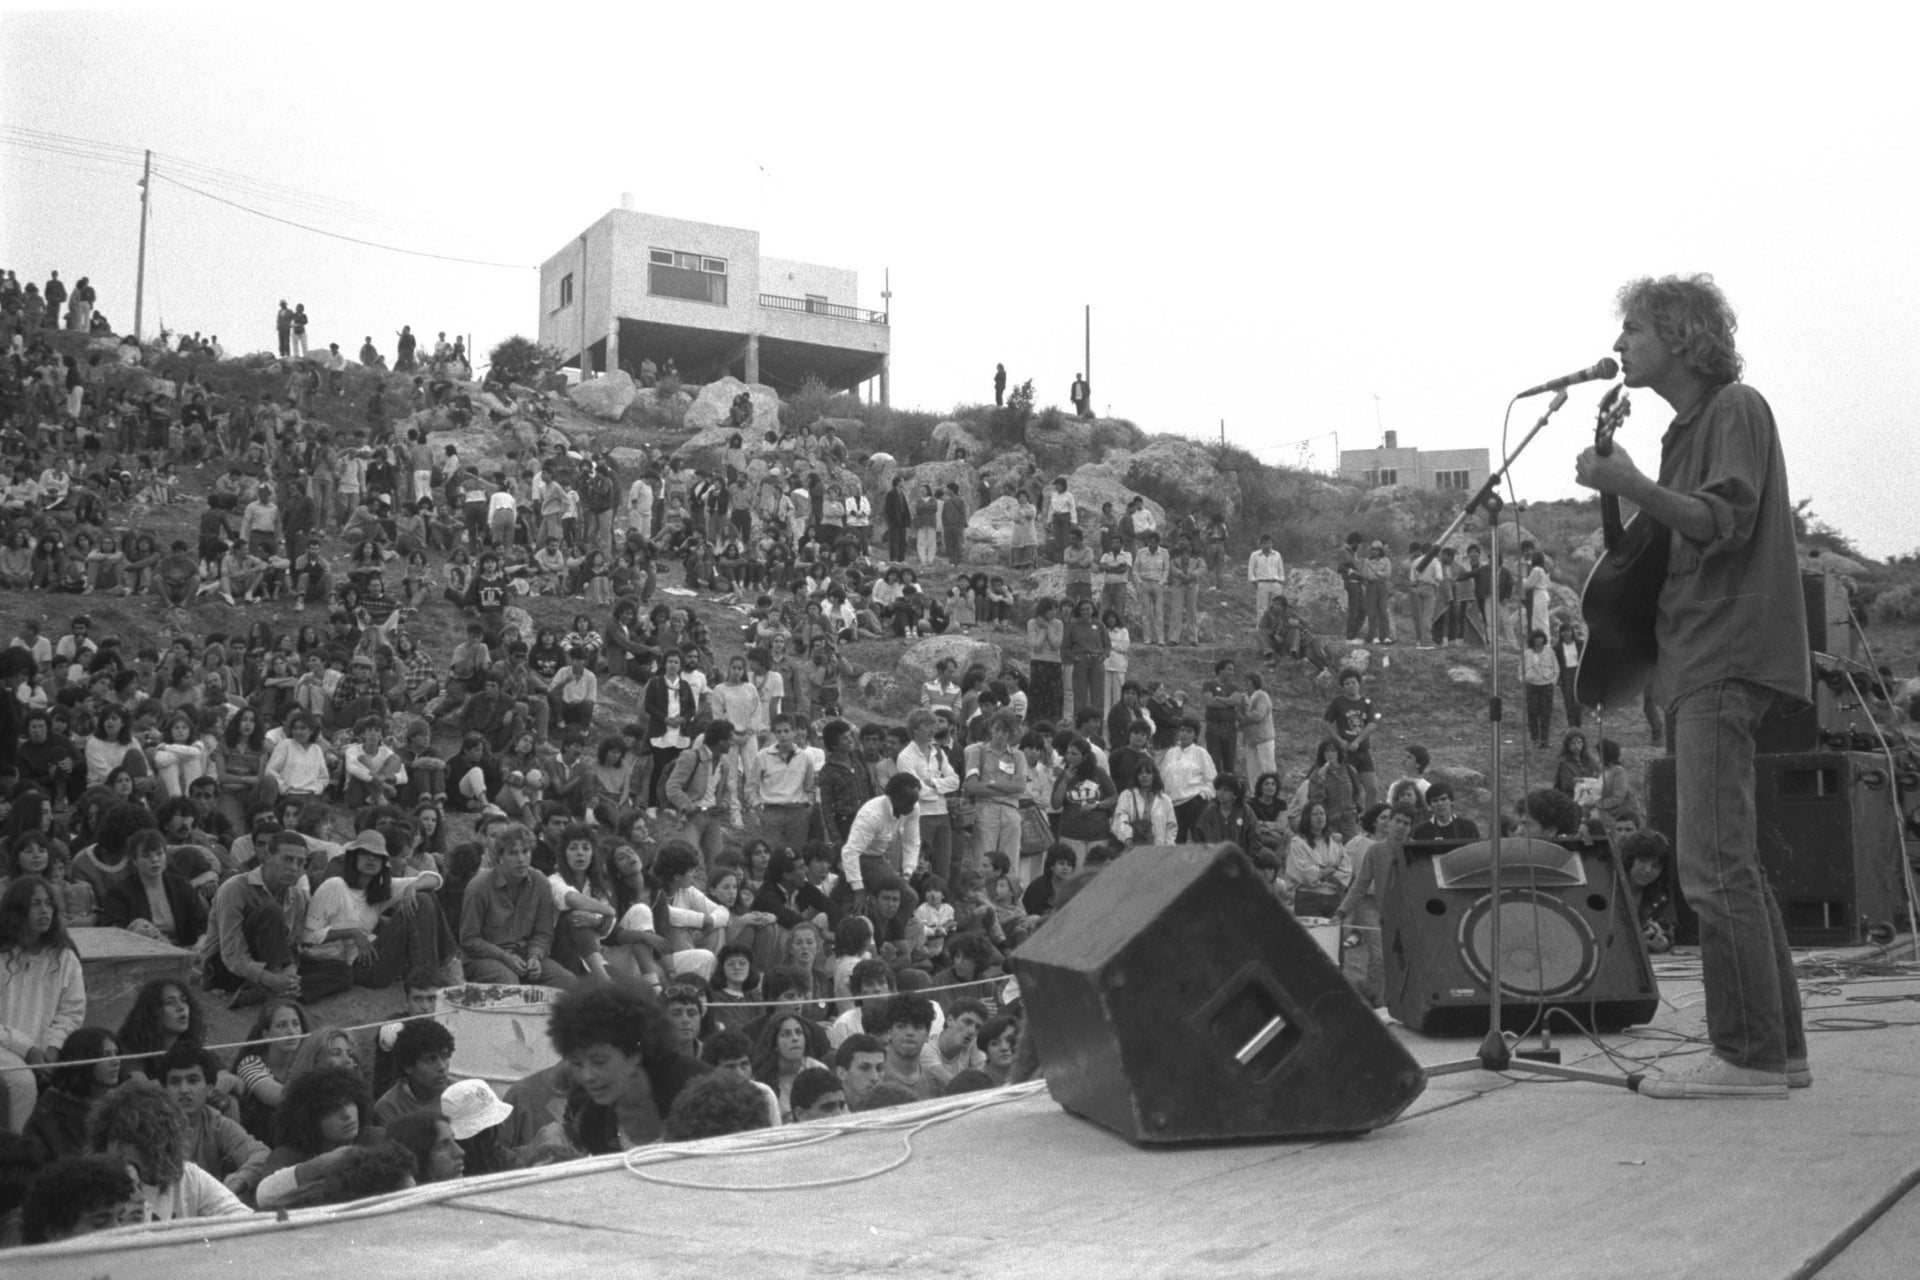 Shalom Hanoch performing at the Israel Peace Festival in Neve Shalom in 1985.